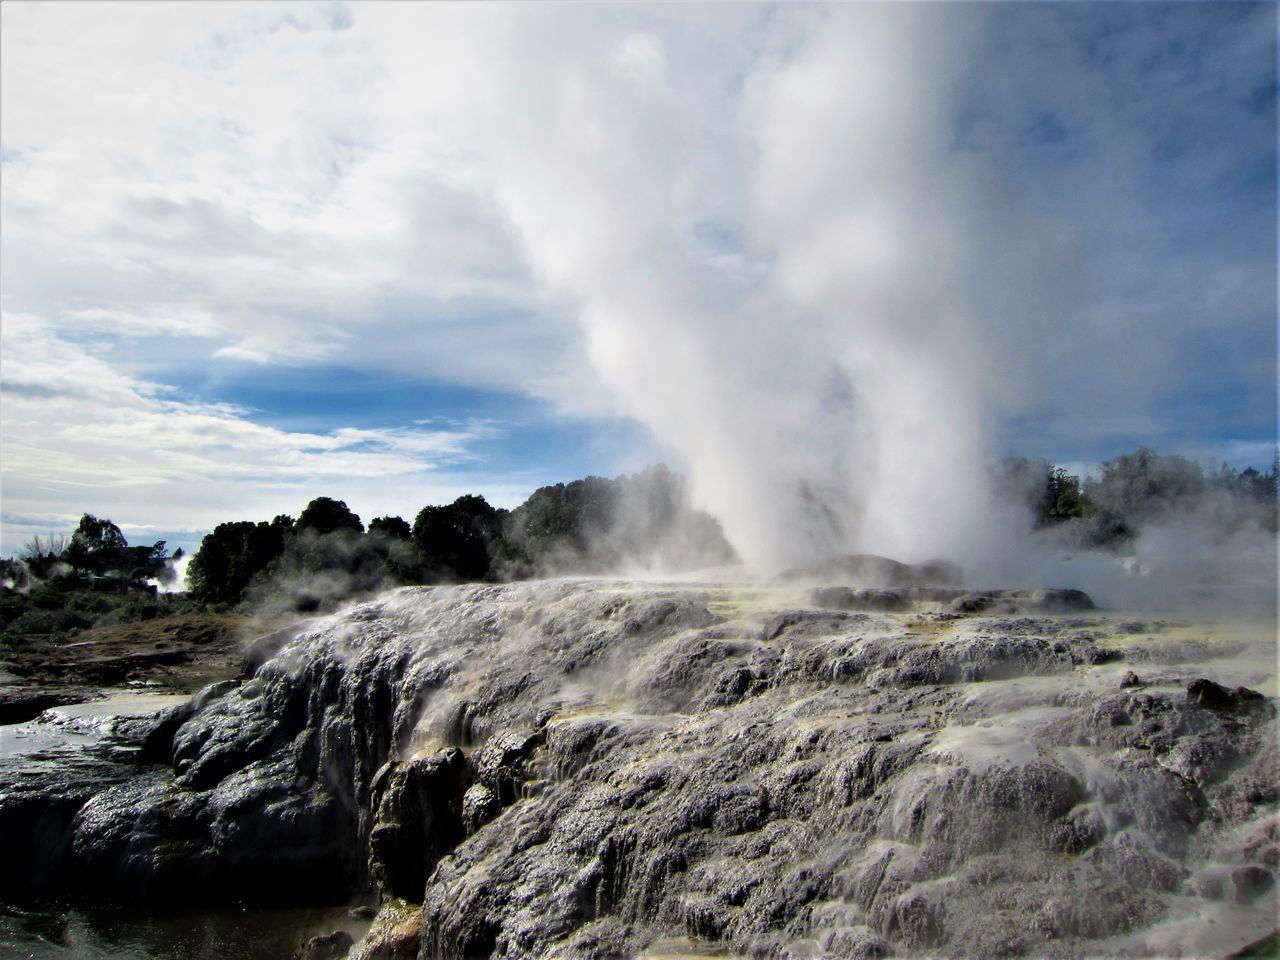 nature, geology, beauty in nature, physical geography, power in nature, scenics, geyser, rock - object, smoke - physical structure, day, landscape, sky, no people, heat - temperature, steam, outdoors, erupting, hot spring, volcanic landscape, tranquility, water